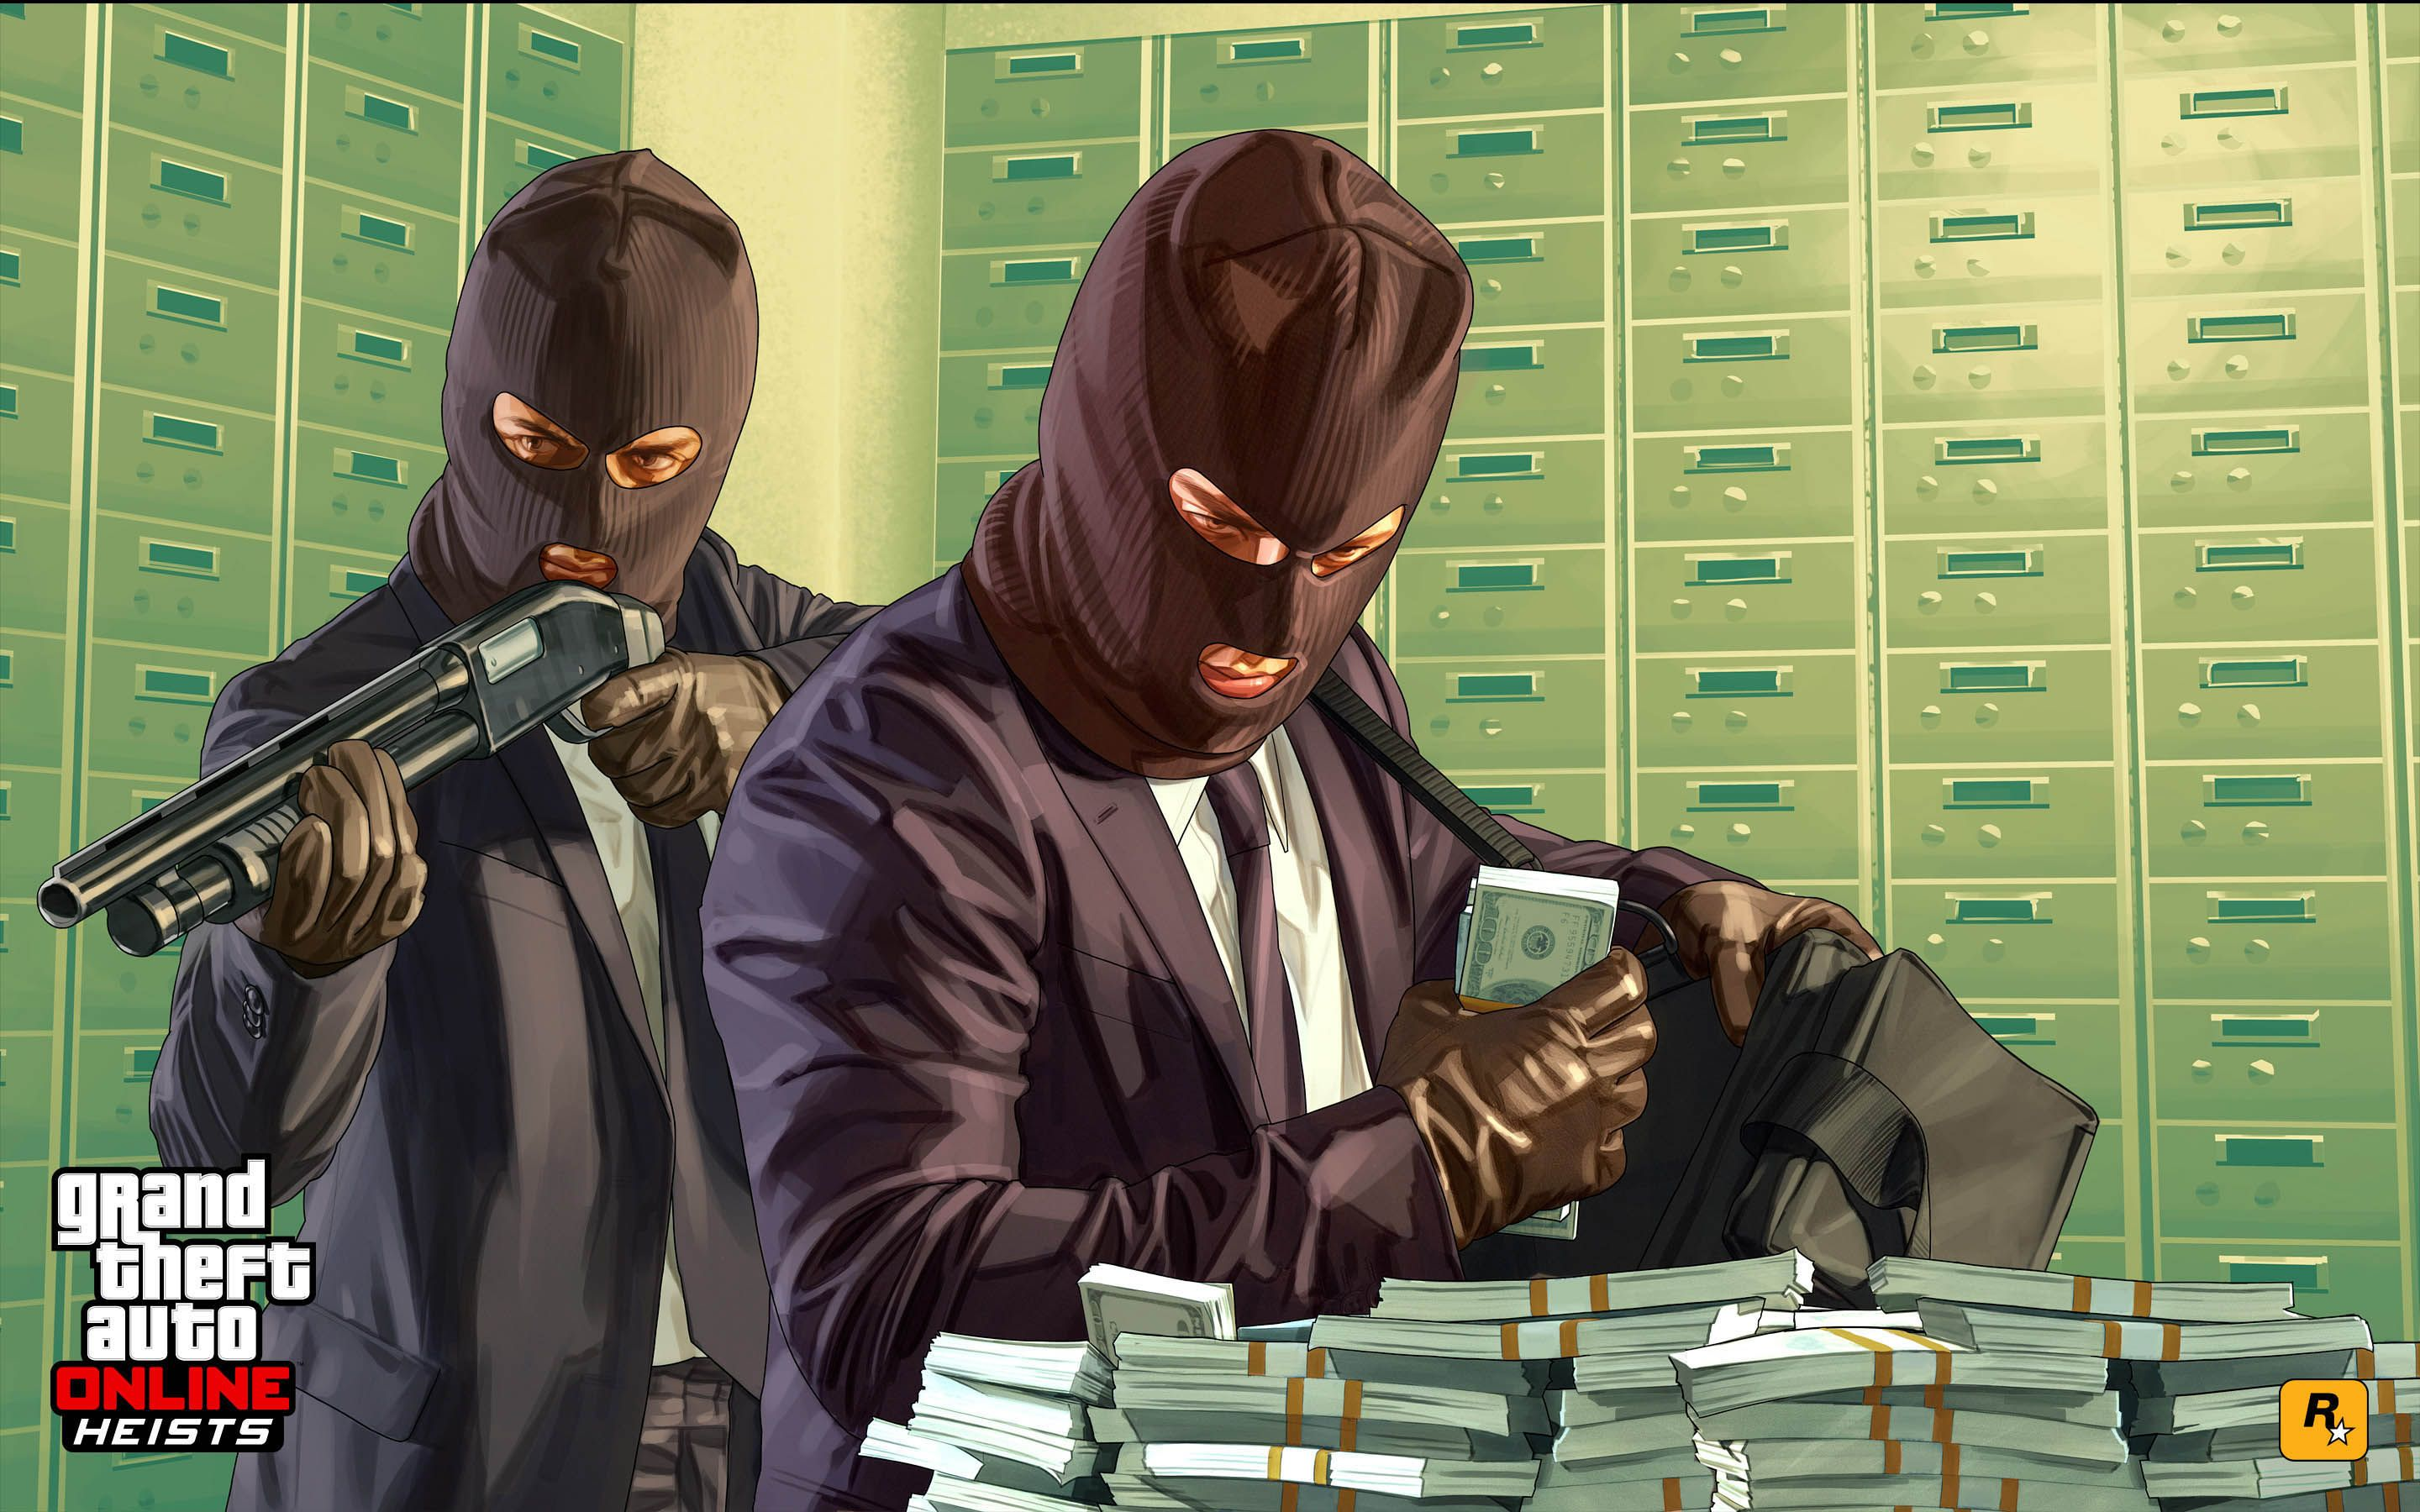 bank heist - gta 5 online update 2880x1800 wallpaper | sucker punch